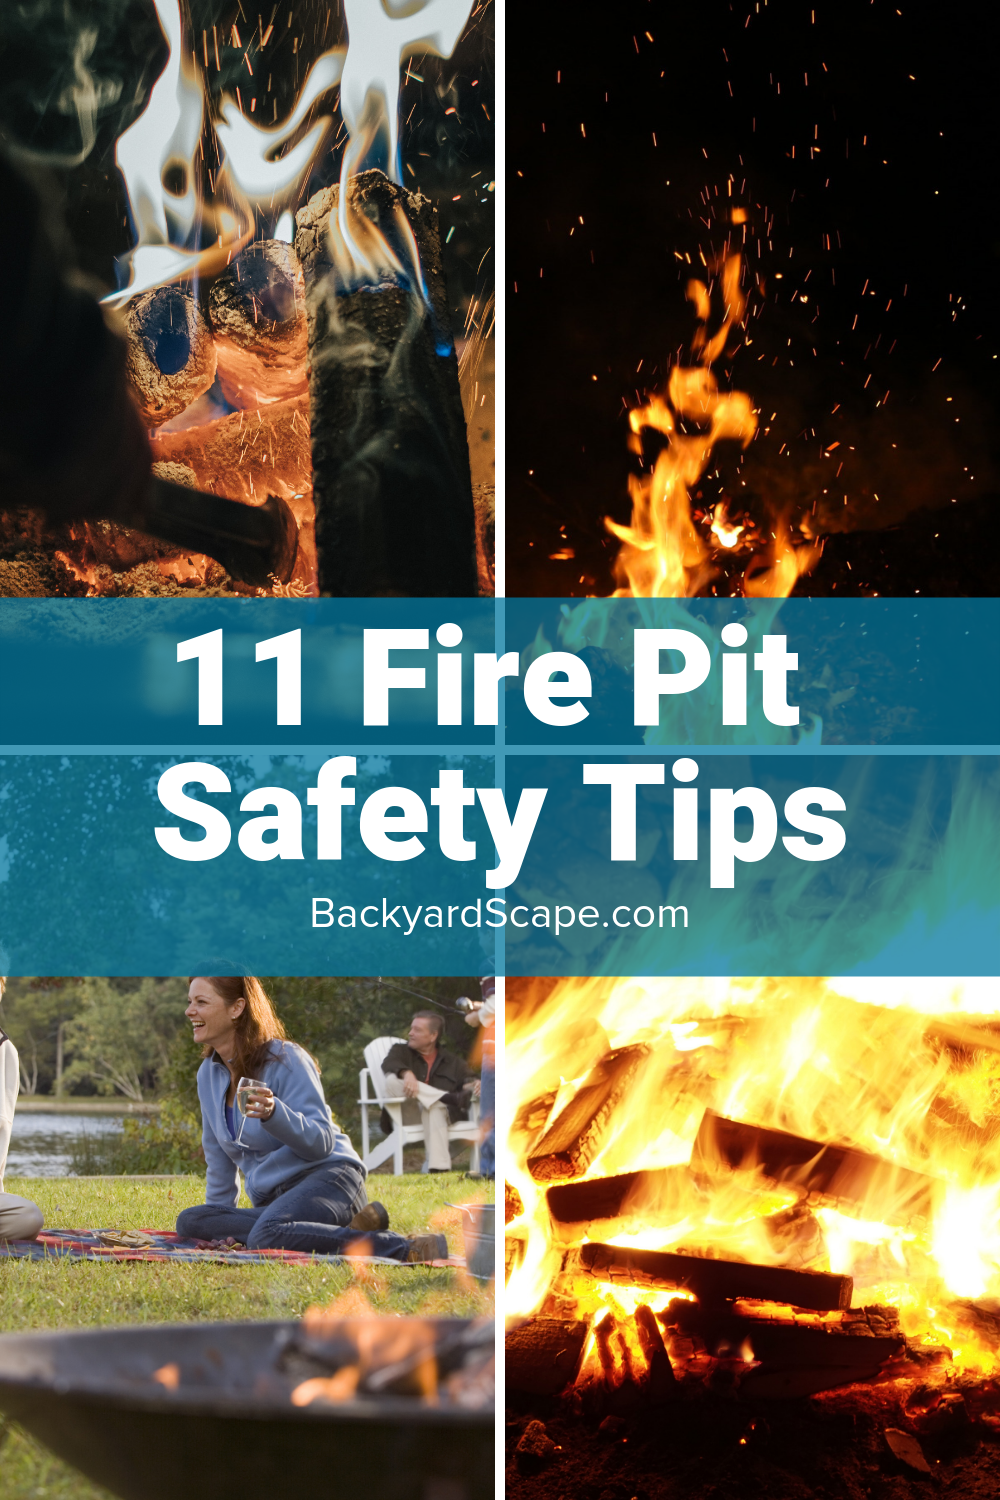 How To Put Out A Fire Pit Fire Safely And Properly Backyardscape Fire Pit Safety Fire Pit Natural Gas Fire Pit